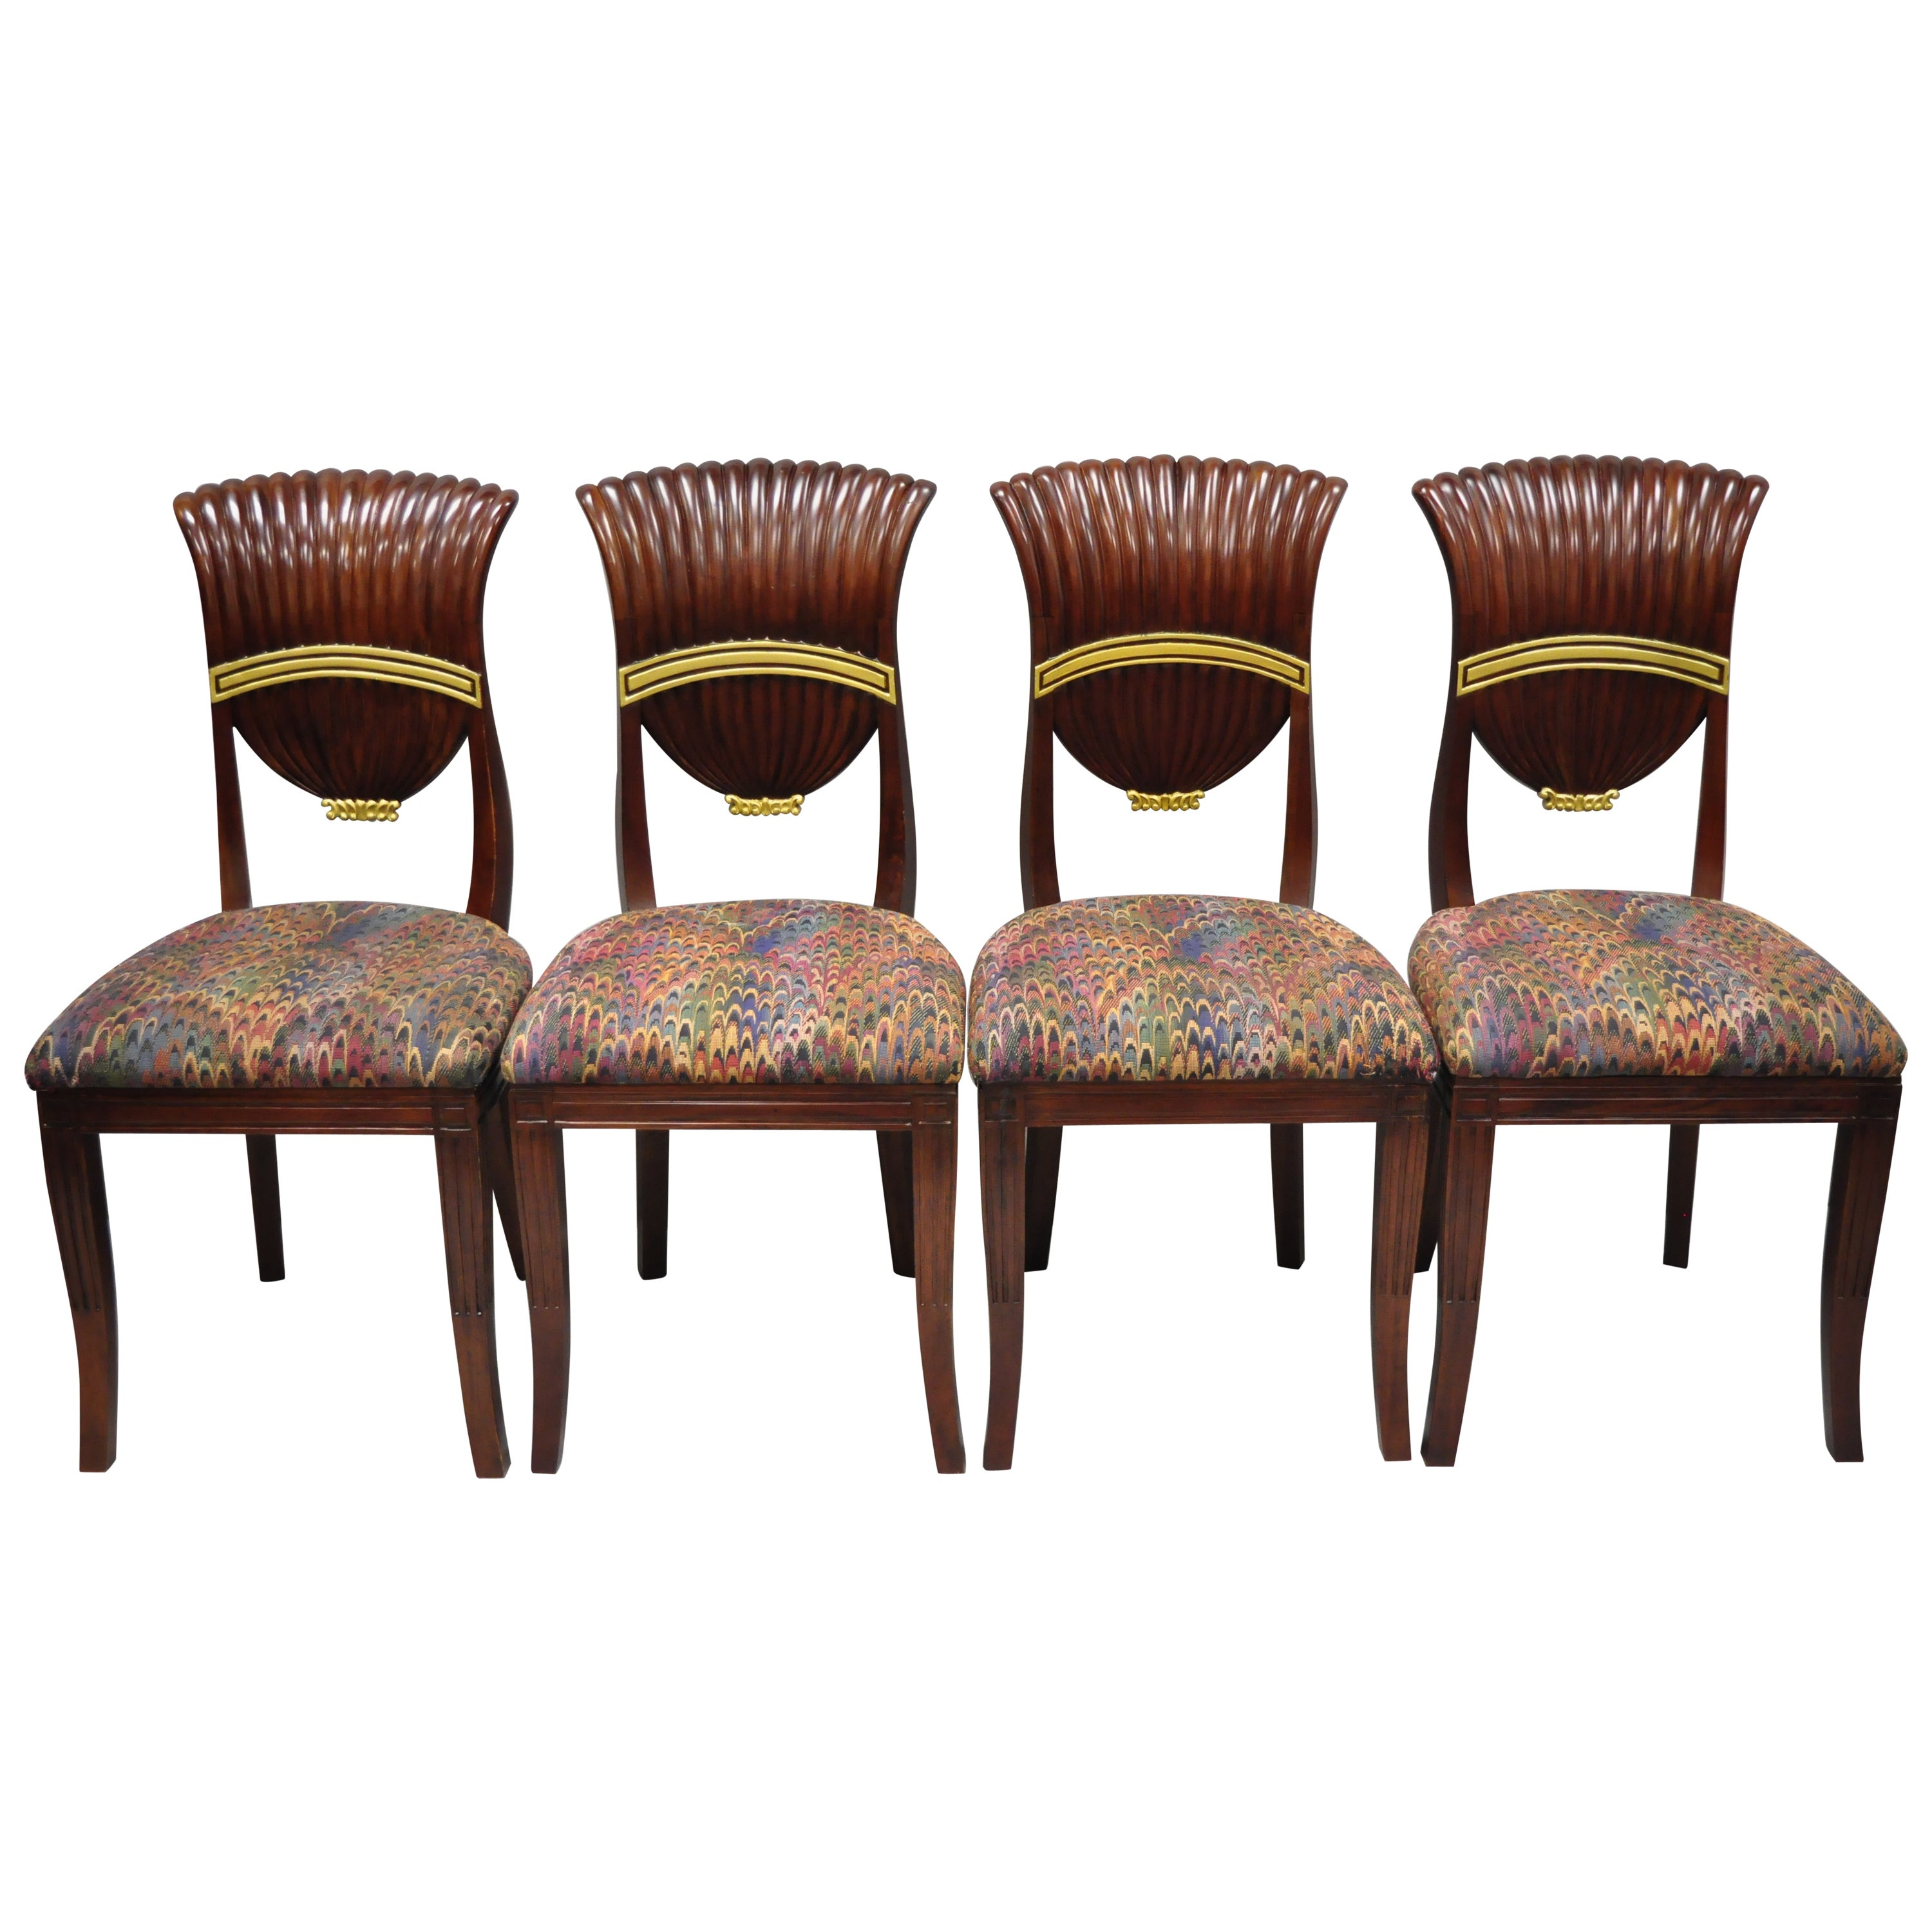 Set of Four French Neoclassical Style Mahogany Shell Fan Back Dining Room Chairs